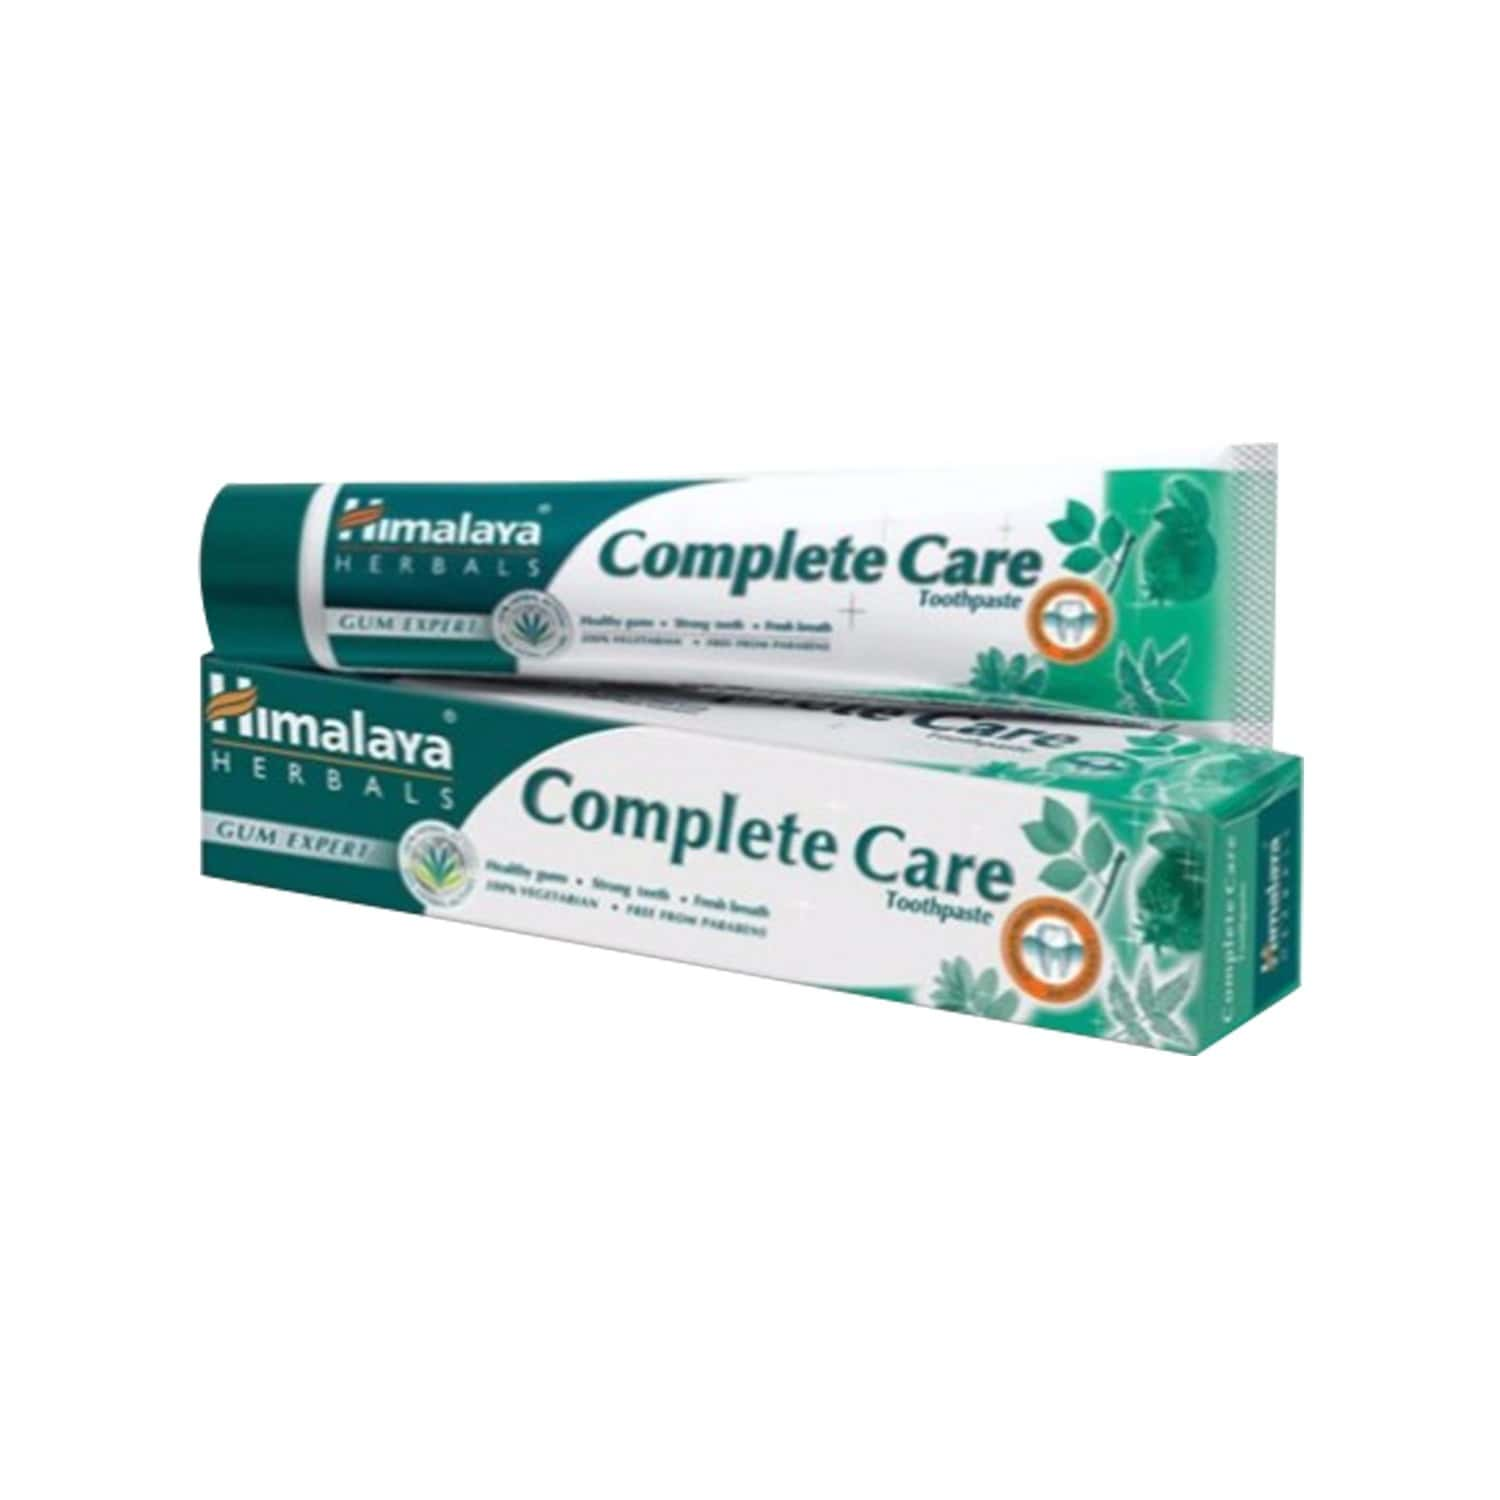 Himalaya Complete Care Toothpaste 2x150 Gm